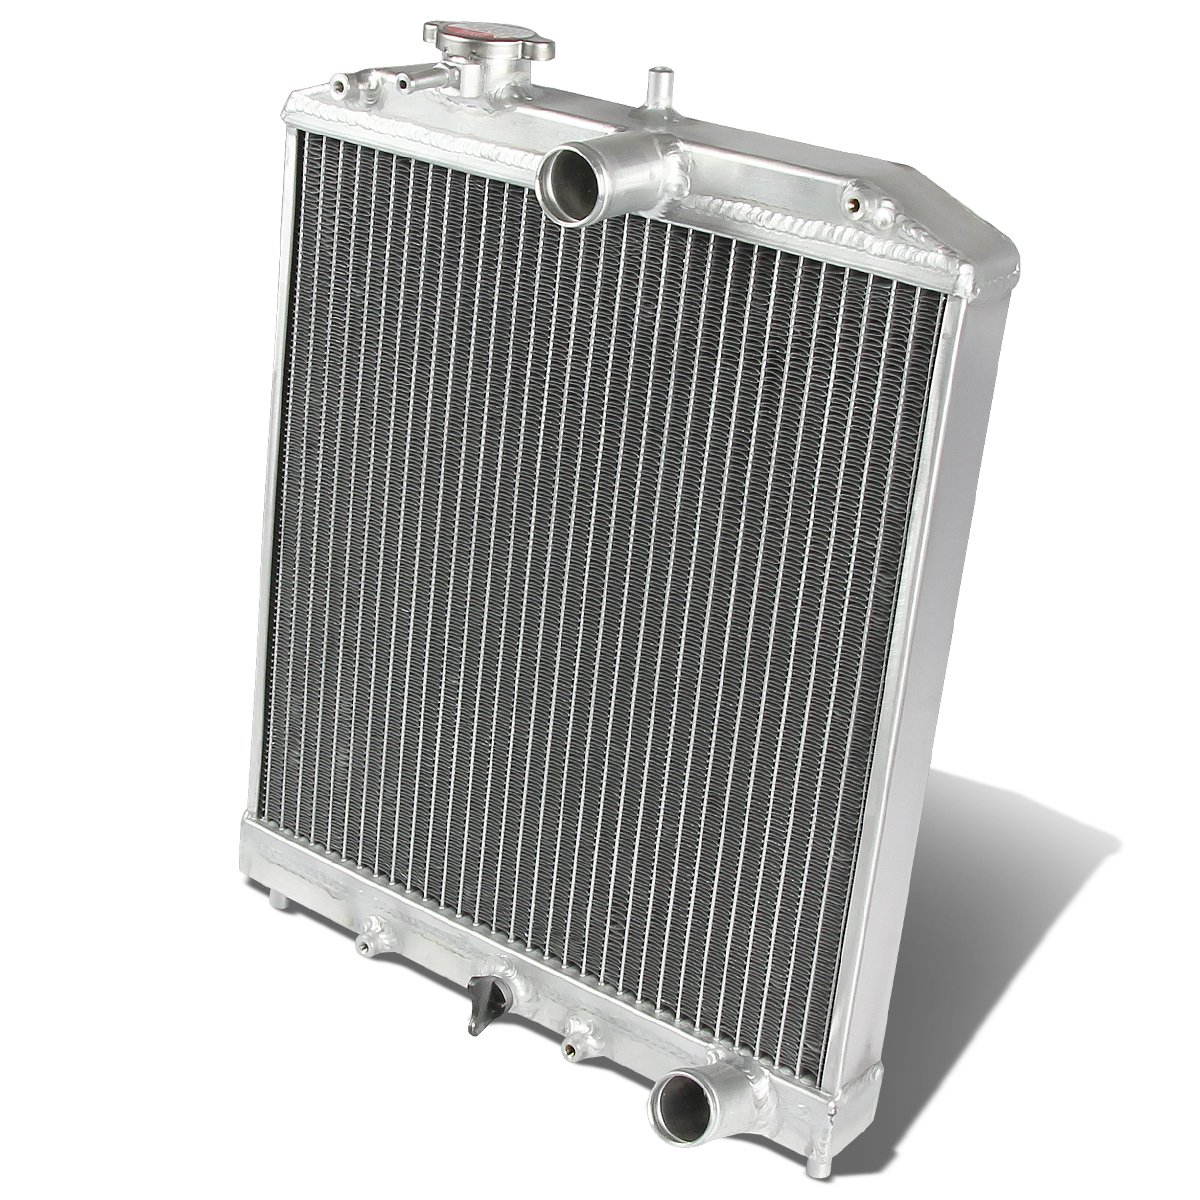 DNA Motoring RA-HC92-42-2 Honda D15/16/B18 1.5L/1.6L/1.8L I4 Mt 2-Row Dual/Double Core T-6061 Aluminum Radiator